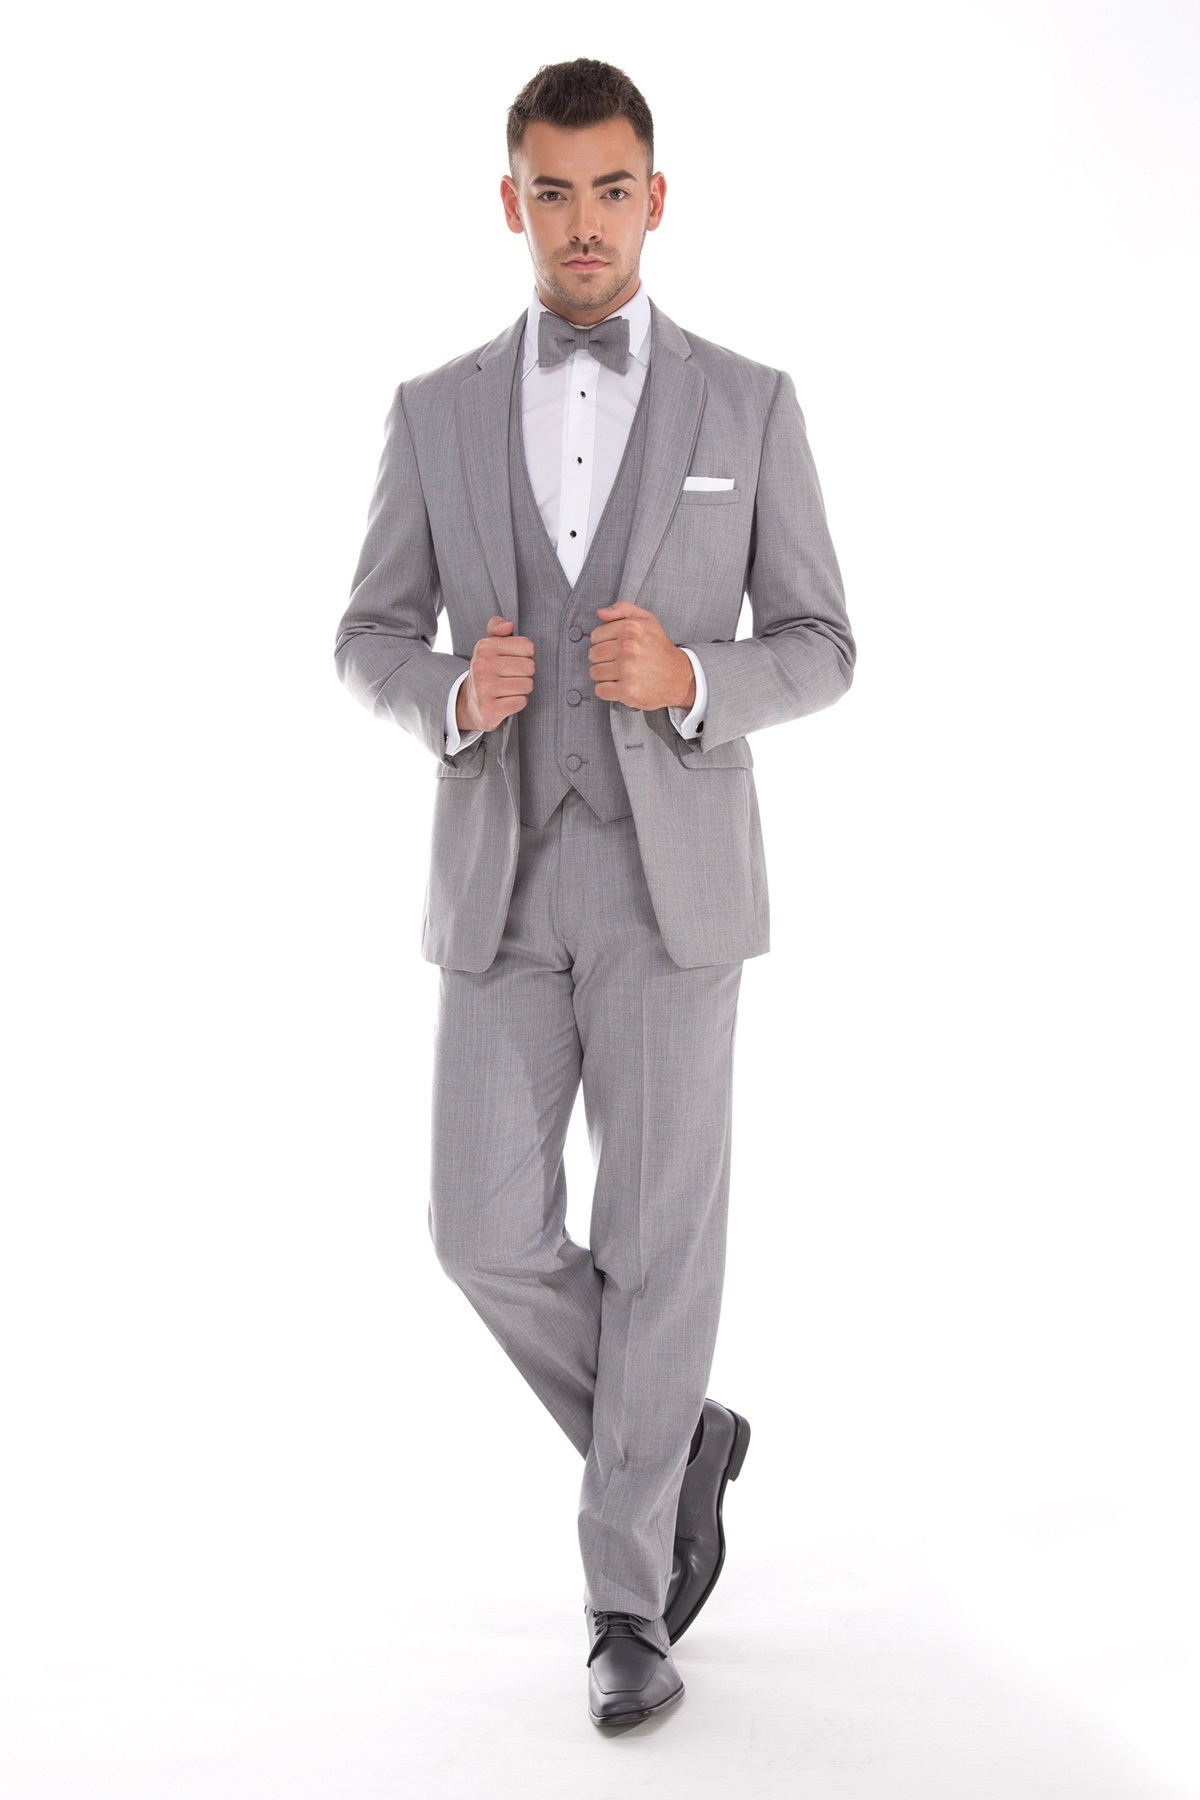 MFWtux.com - Grey Heather Allure Men Wedding Suit